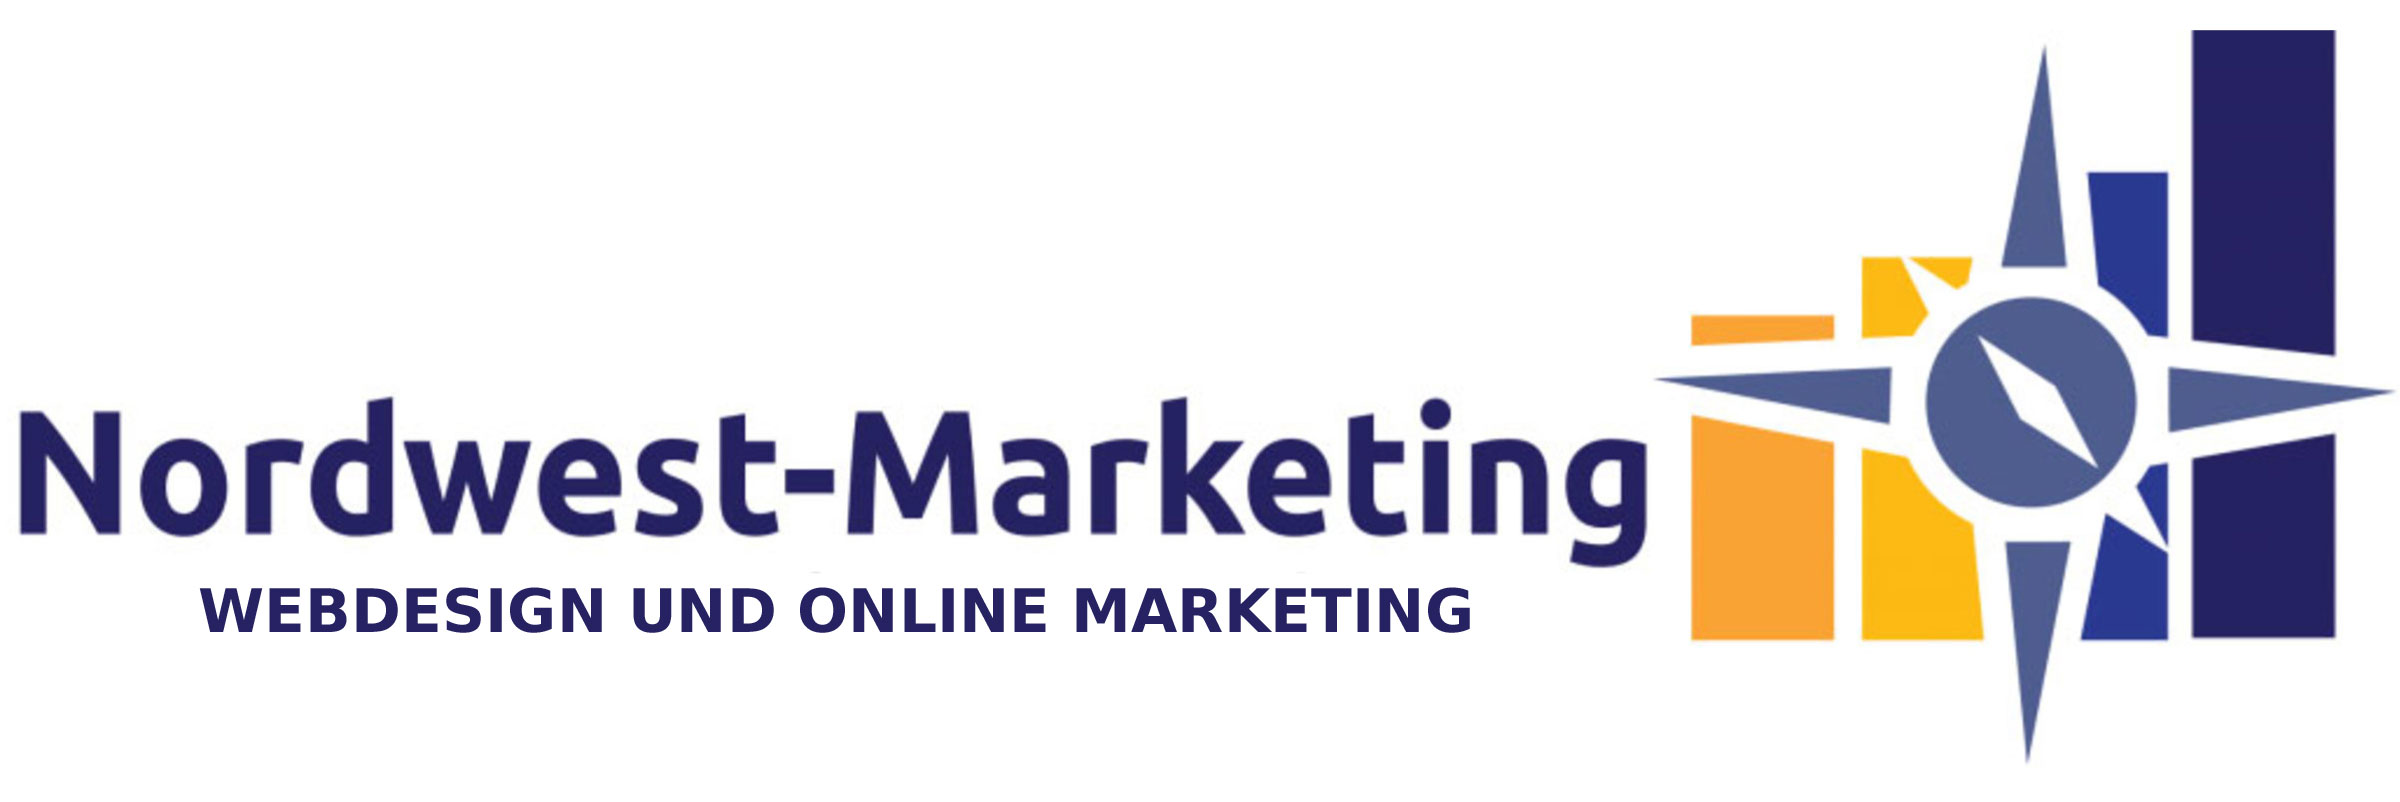 Nordwest Marketing Webdesign und Online Marketing